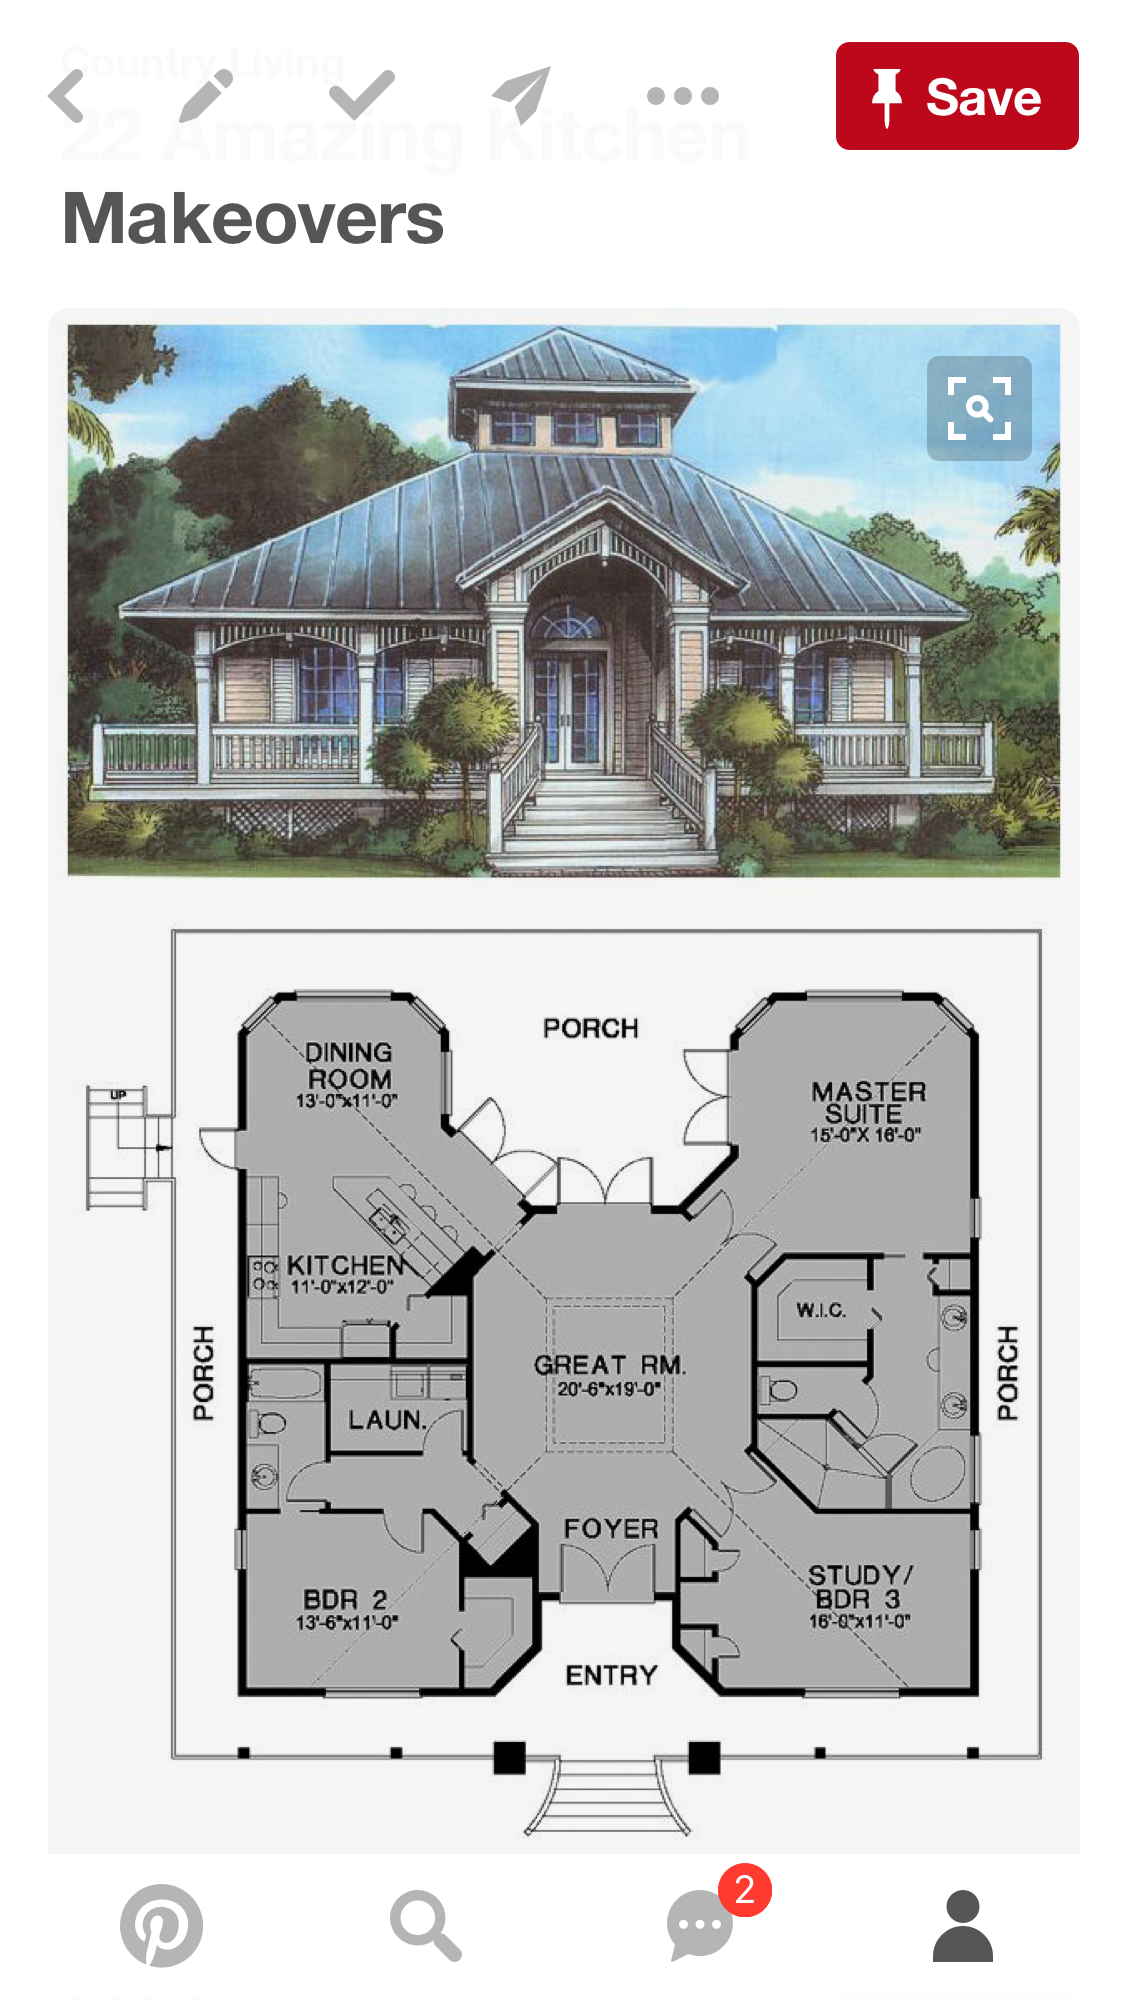 Pin By Nichole Harris On Key West Style Home Best House Plans House Floor Plans Cracker House